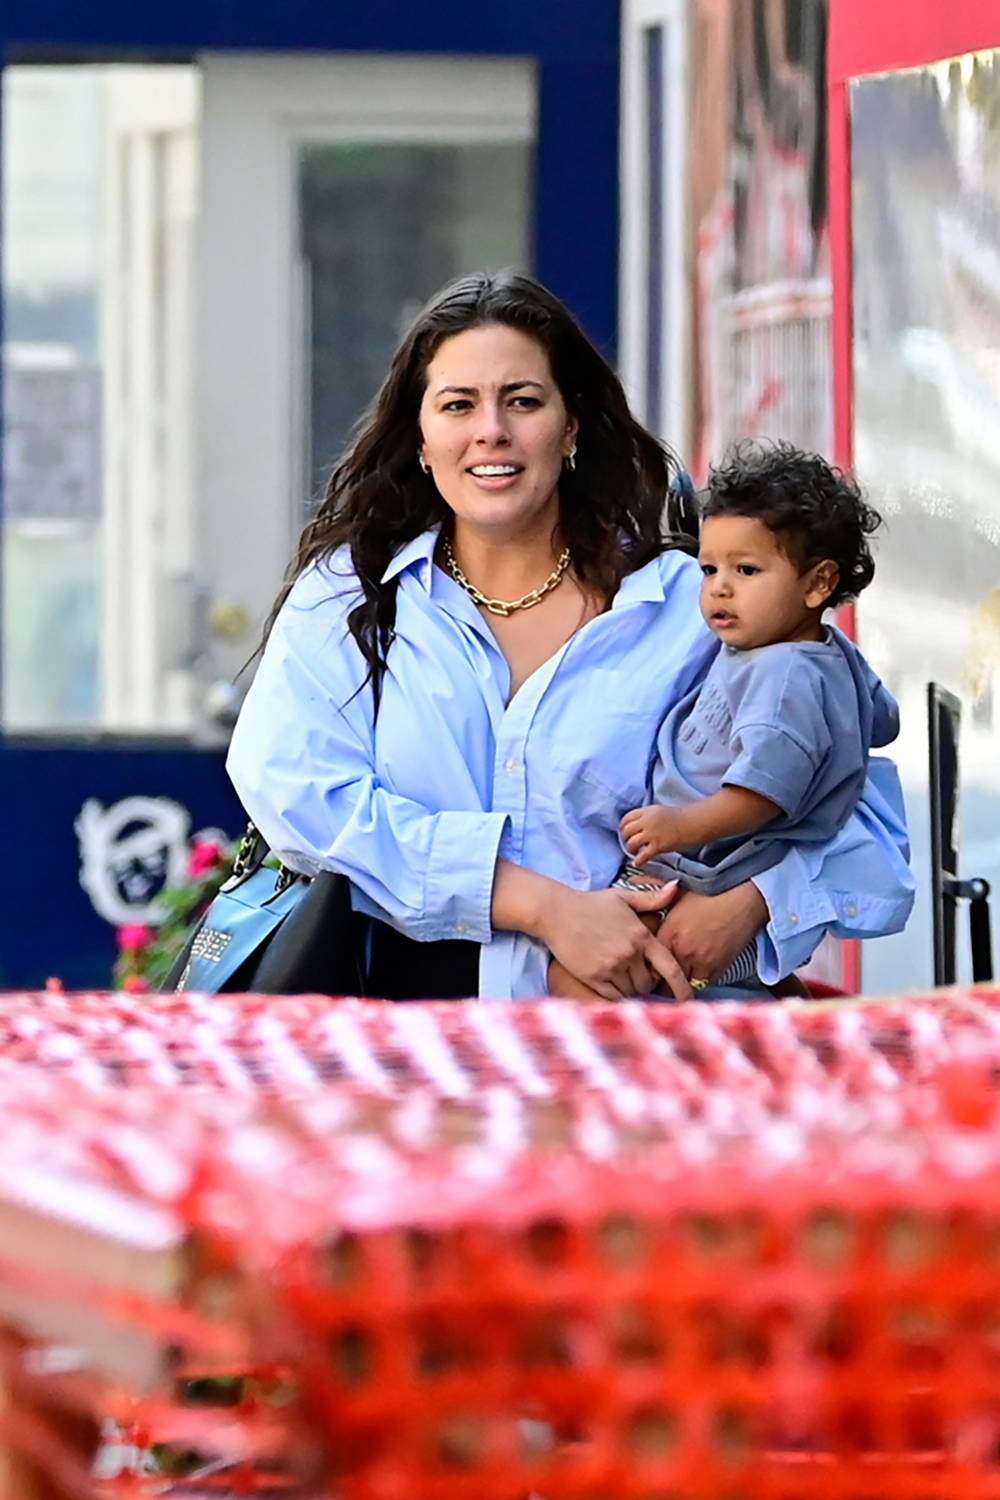 Ashley Graham carries her son as she leaves a restaurant in New York City